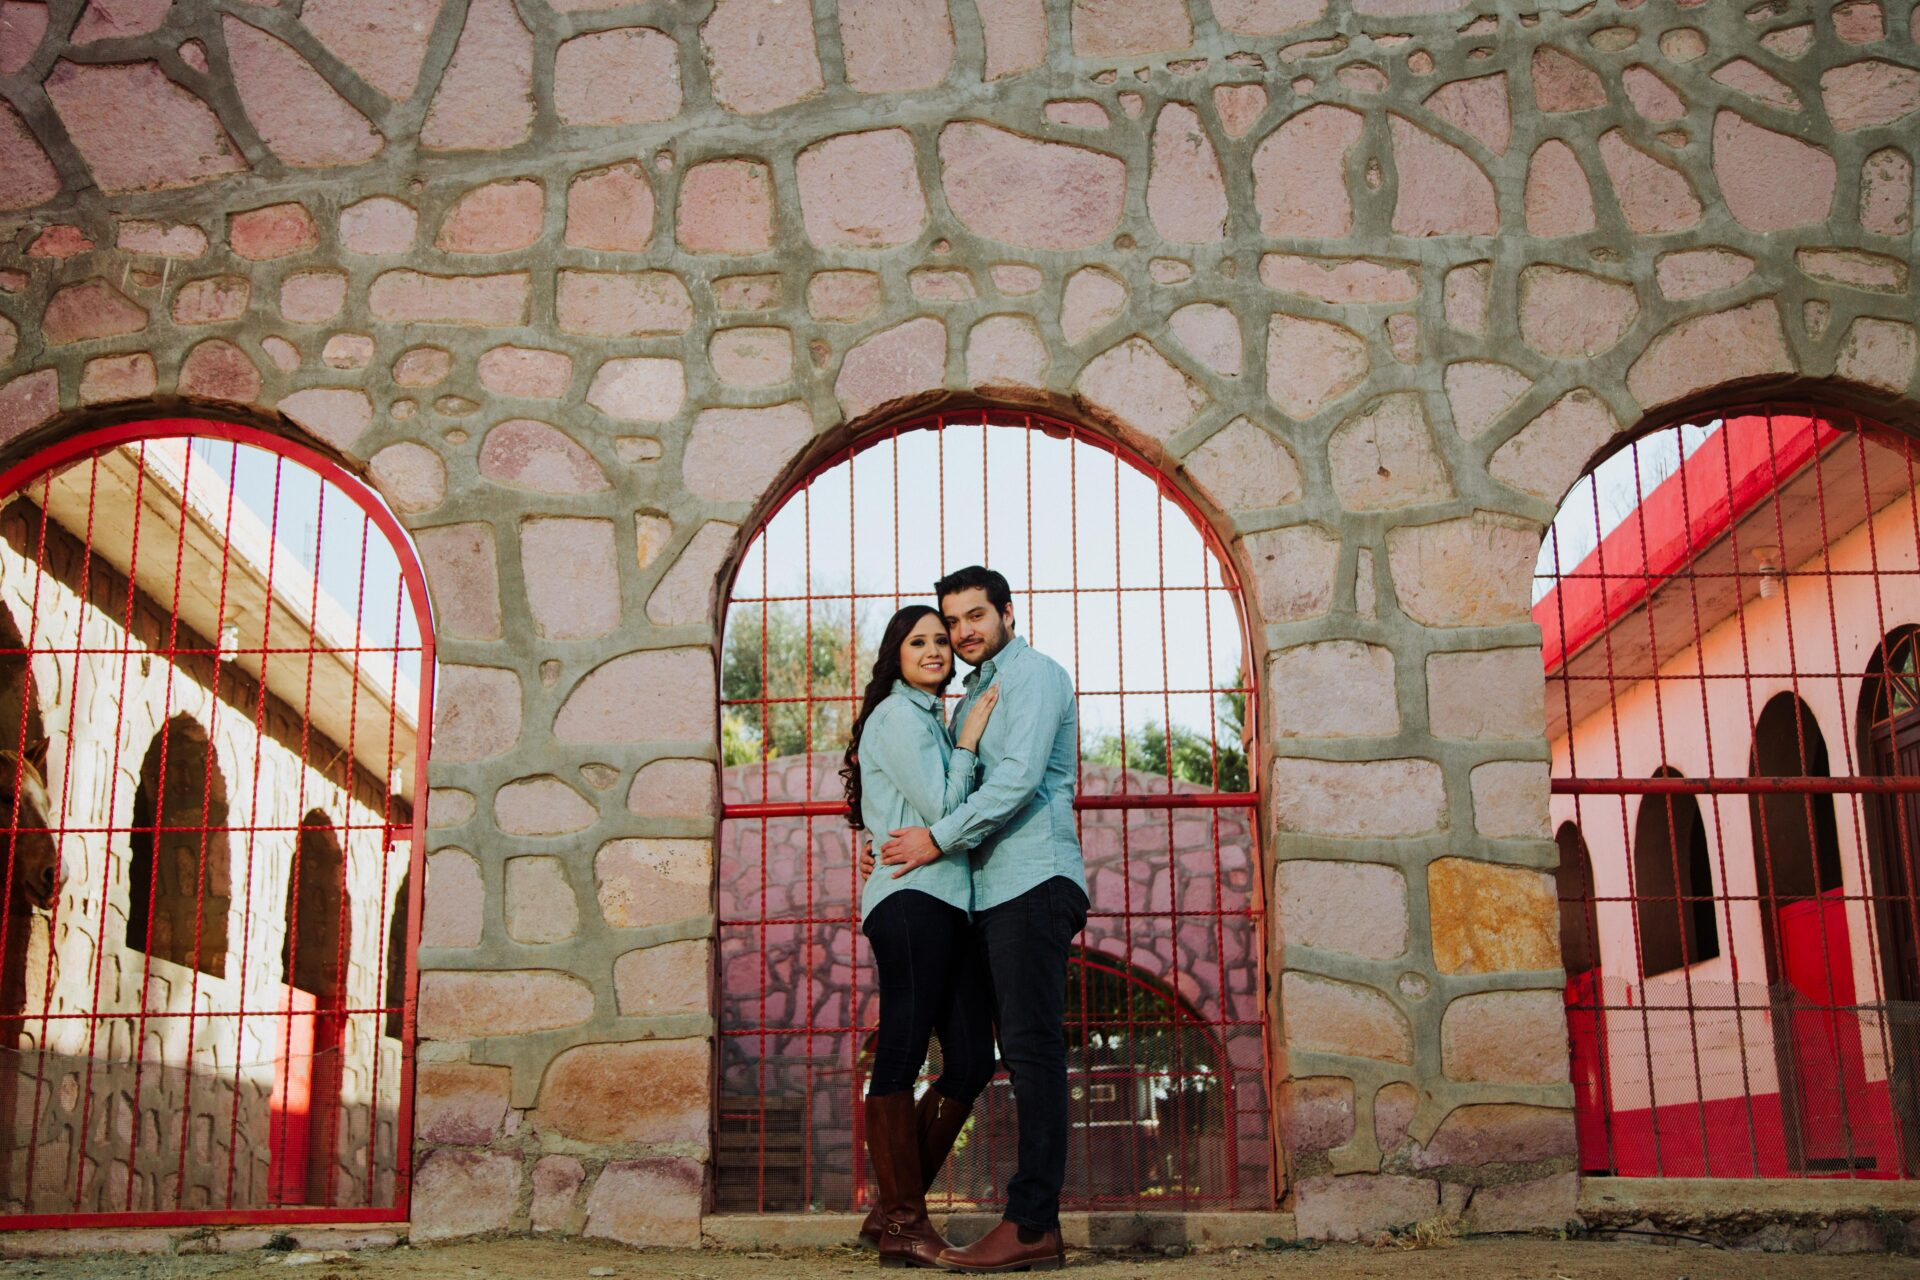 javier_noriega_fotografo_save_the_date_zacatecas_wedding_photographer9